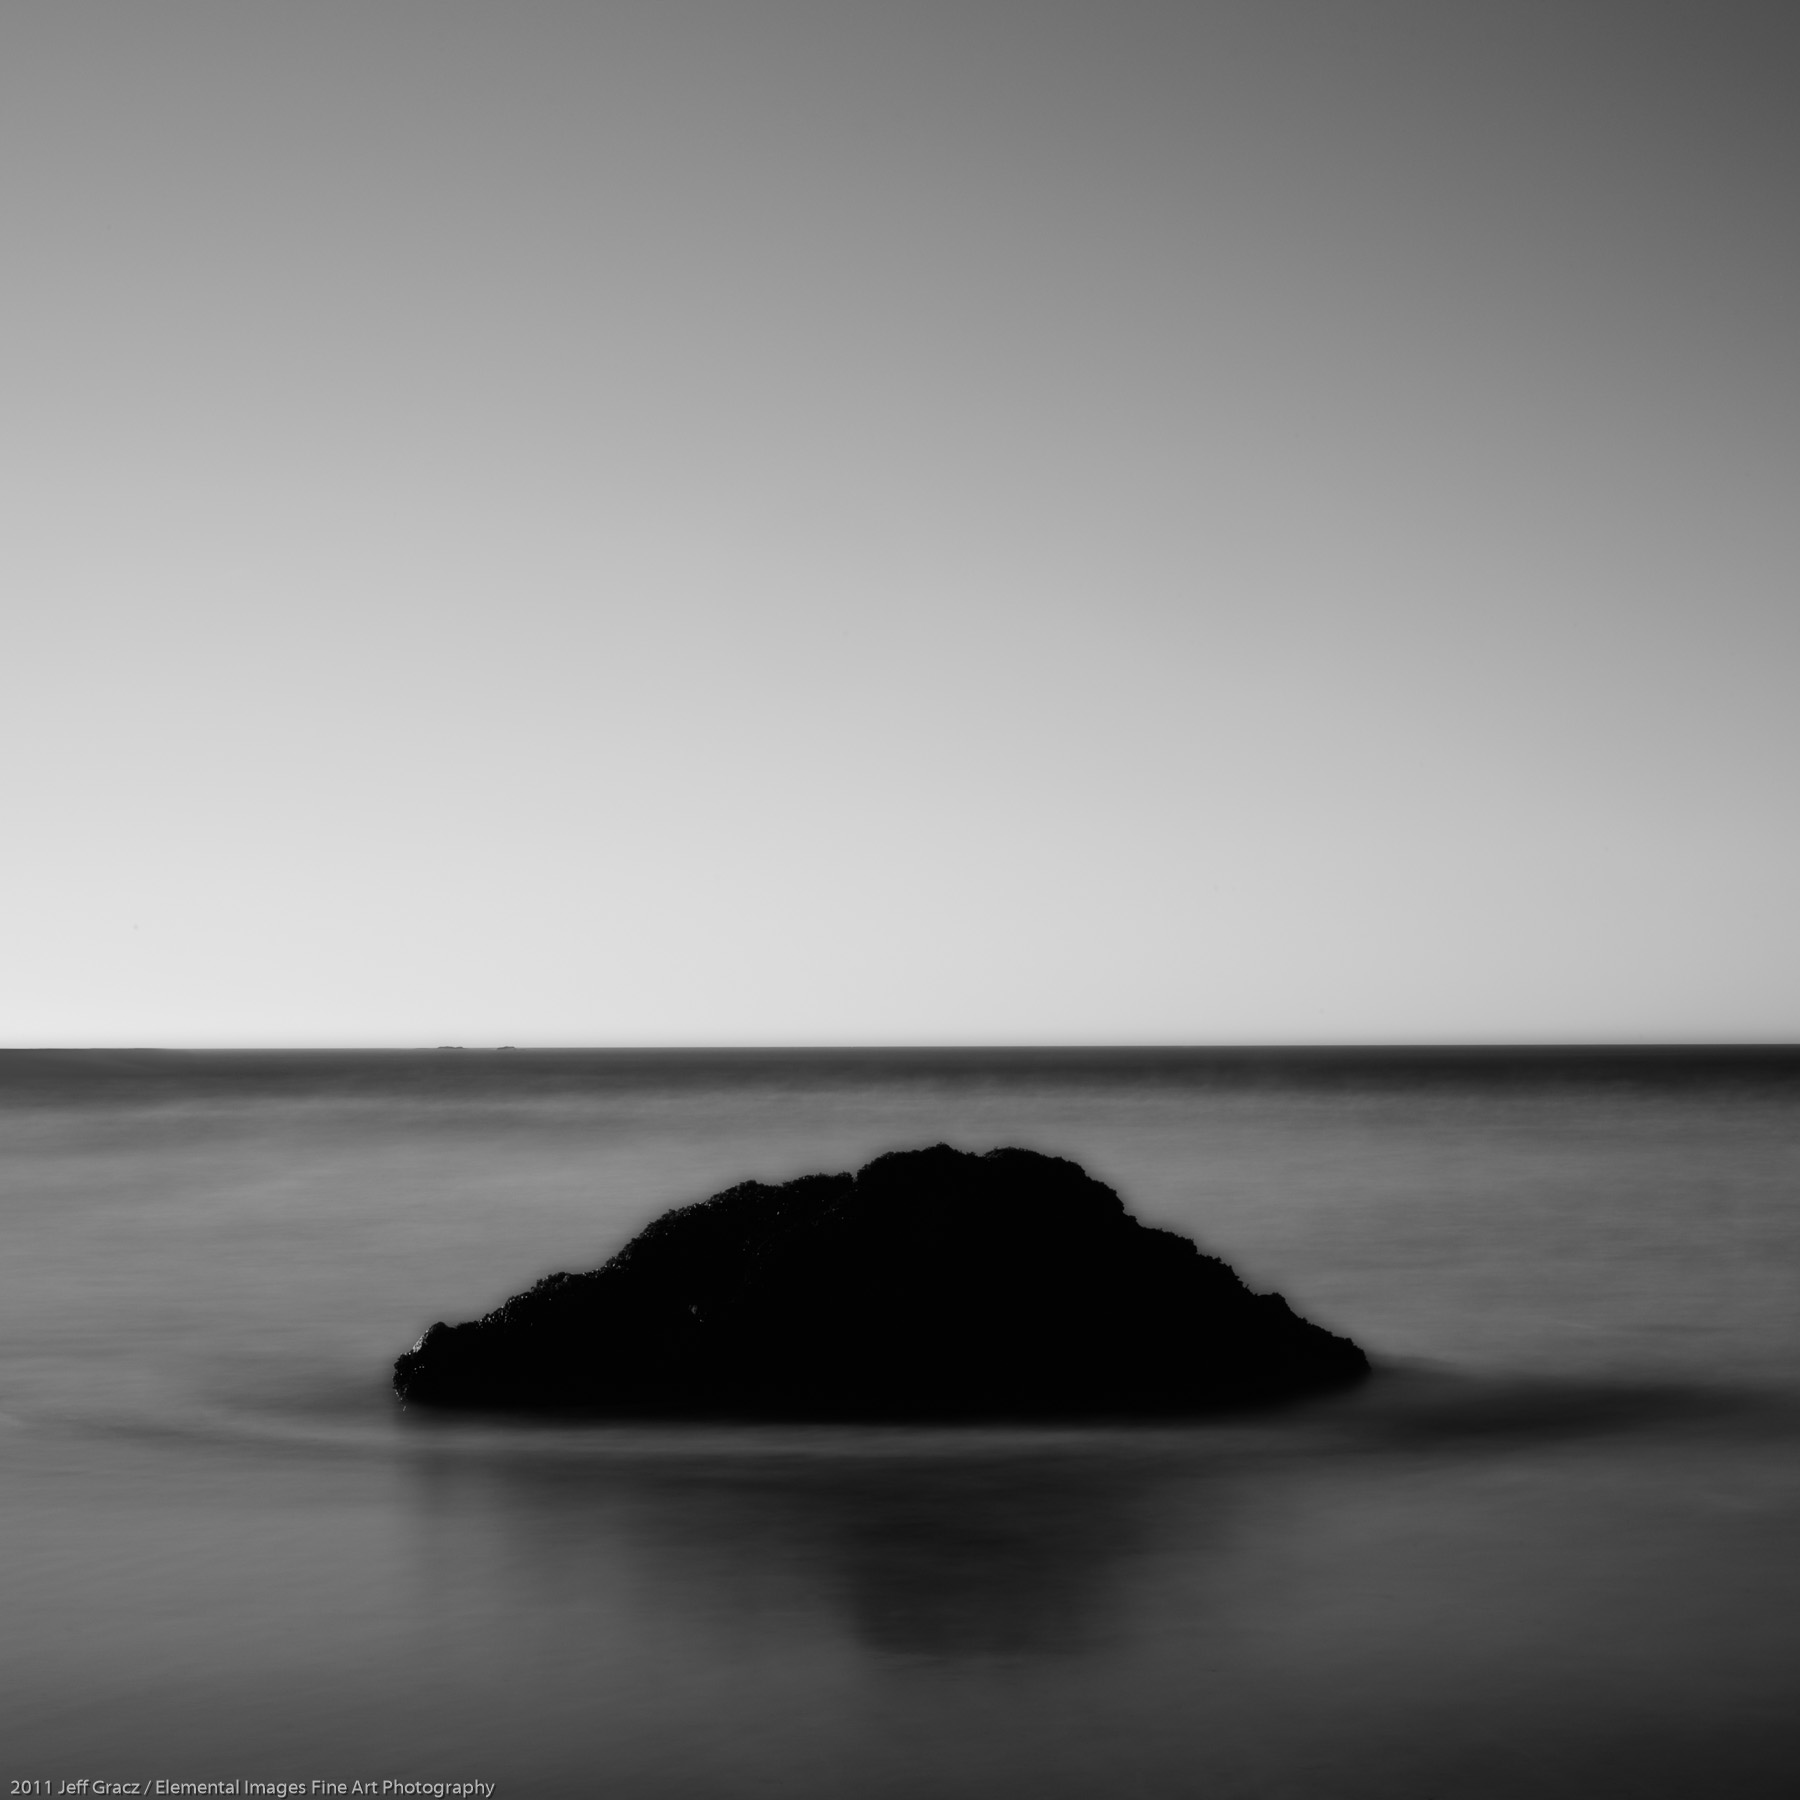 Zen Rocks III | Trinidad | CA | USA - © 2011 Jeff Gracz / Elemental Images Fine Art Photography - All Rights Reserved Worldwide